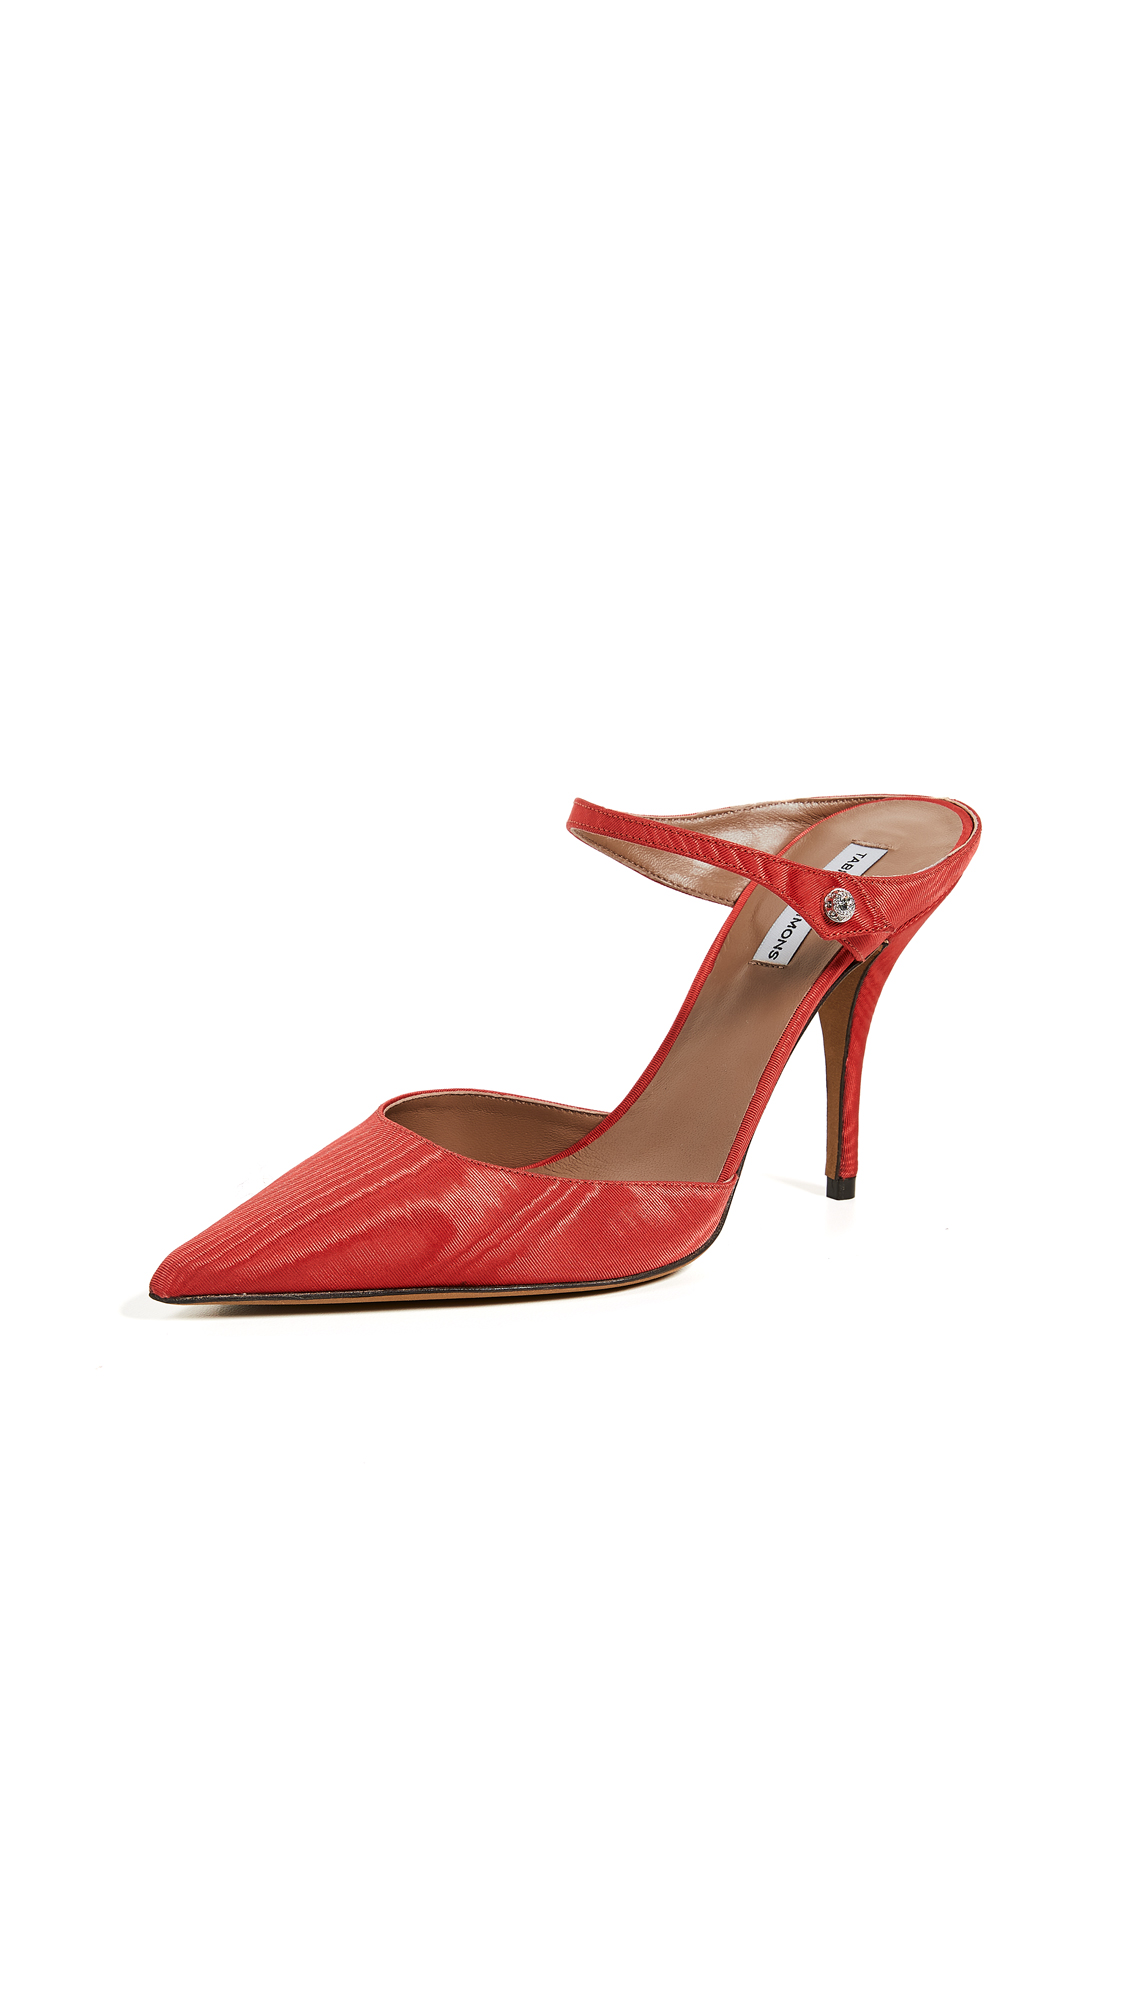 Tabitha Simmons Allie Mules - Red